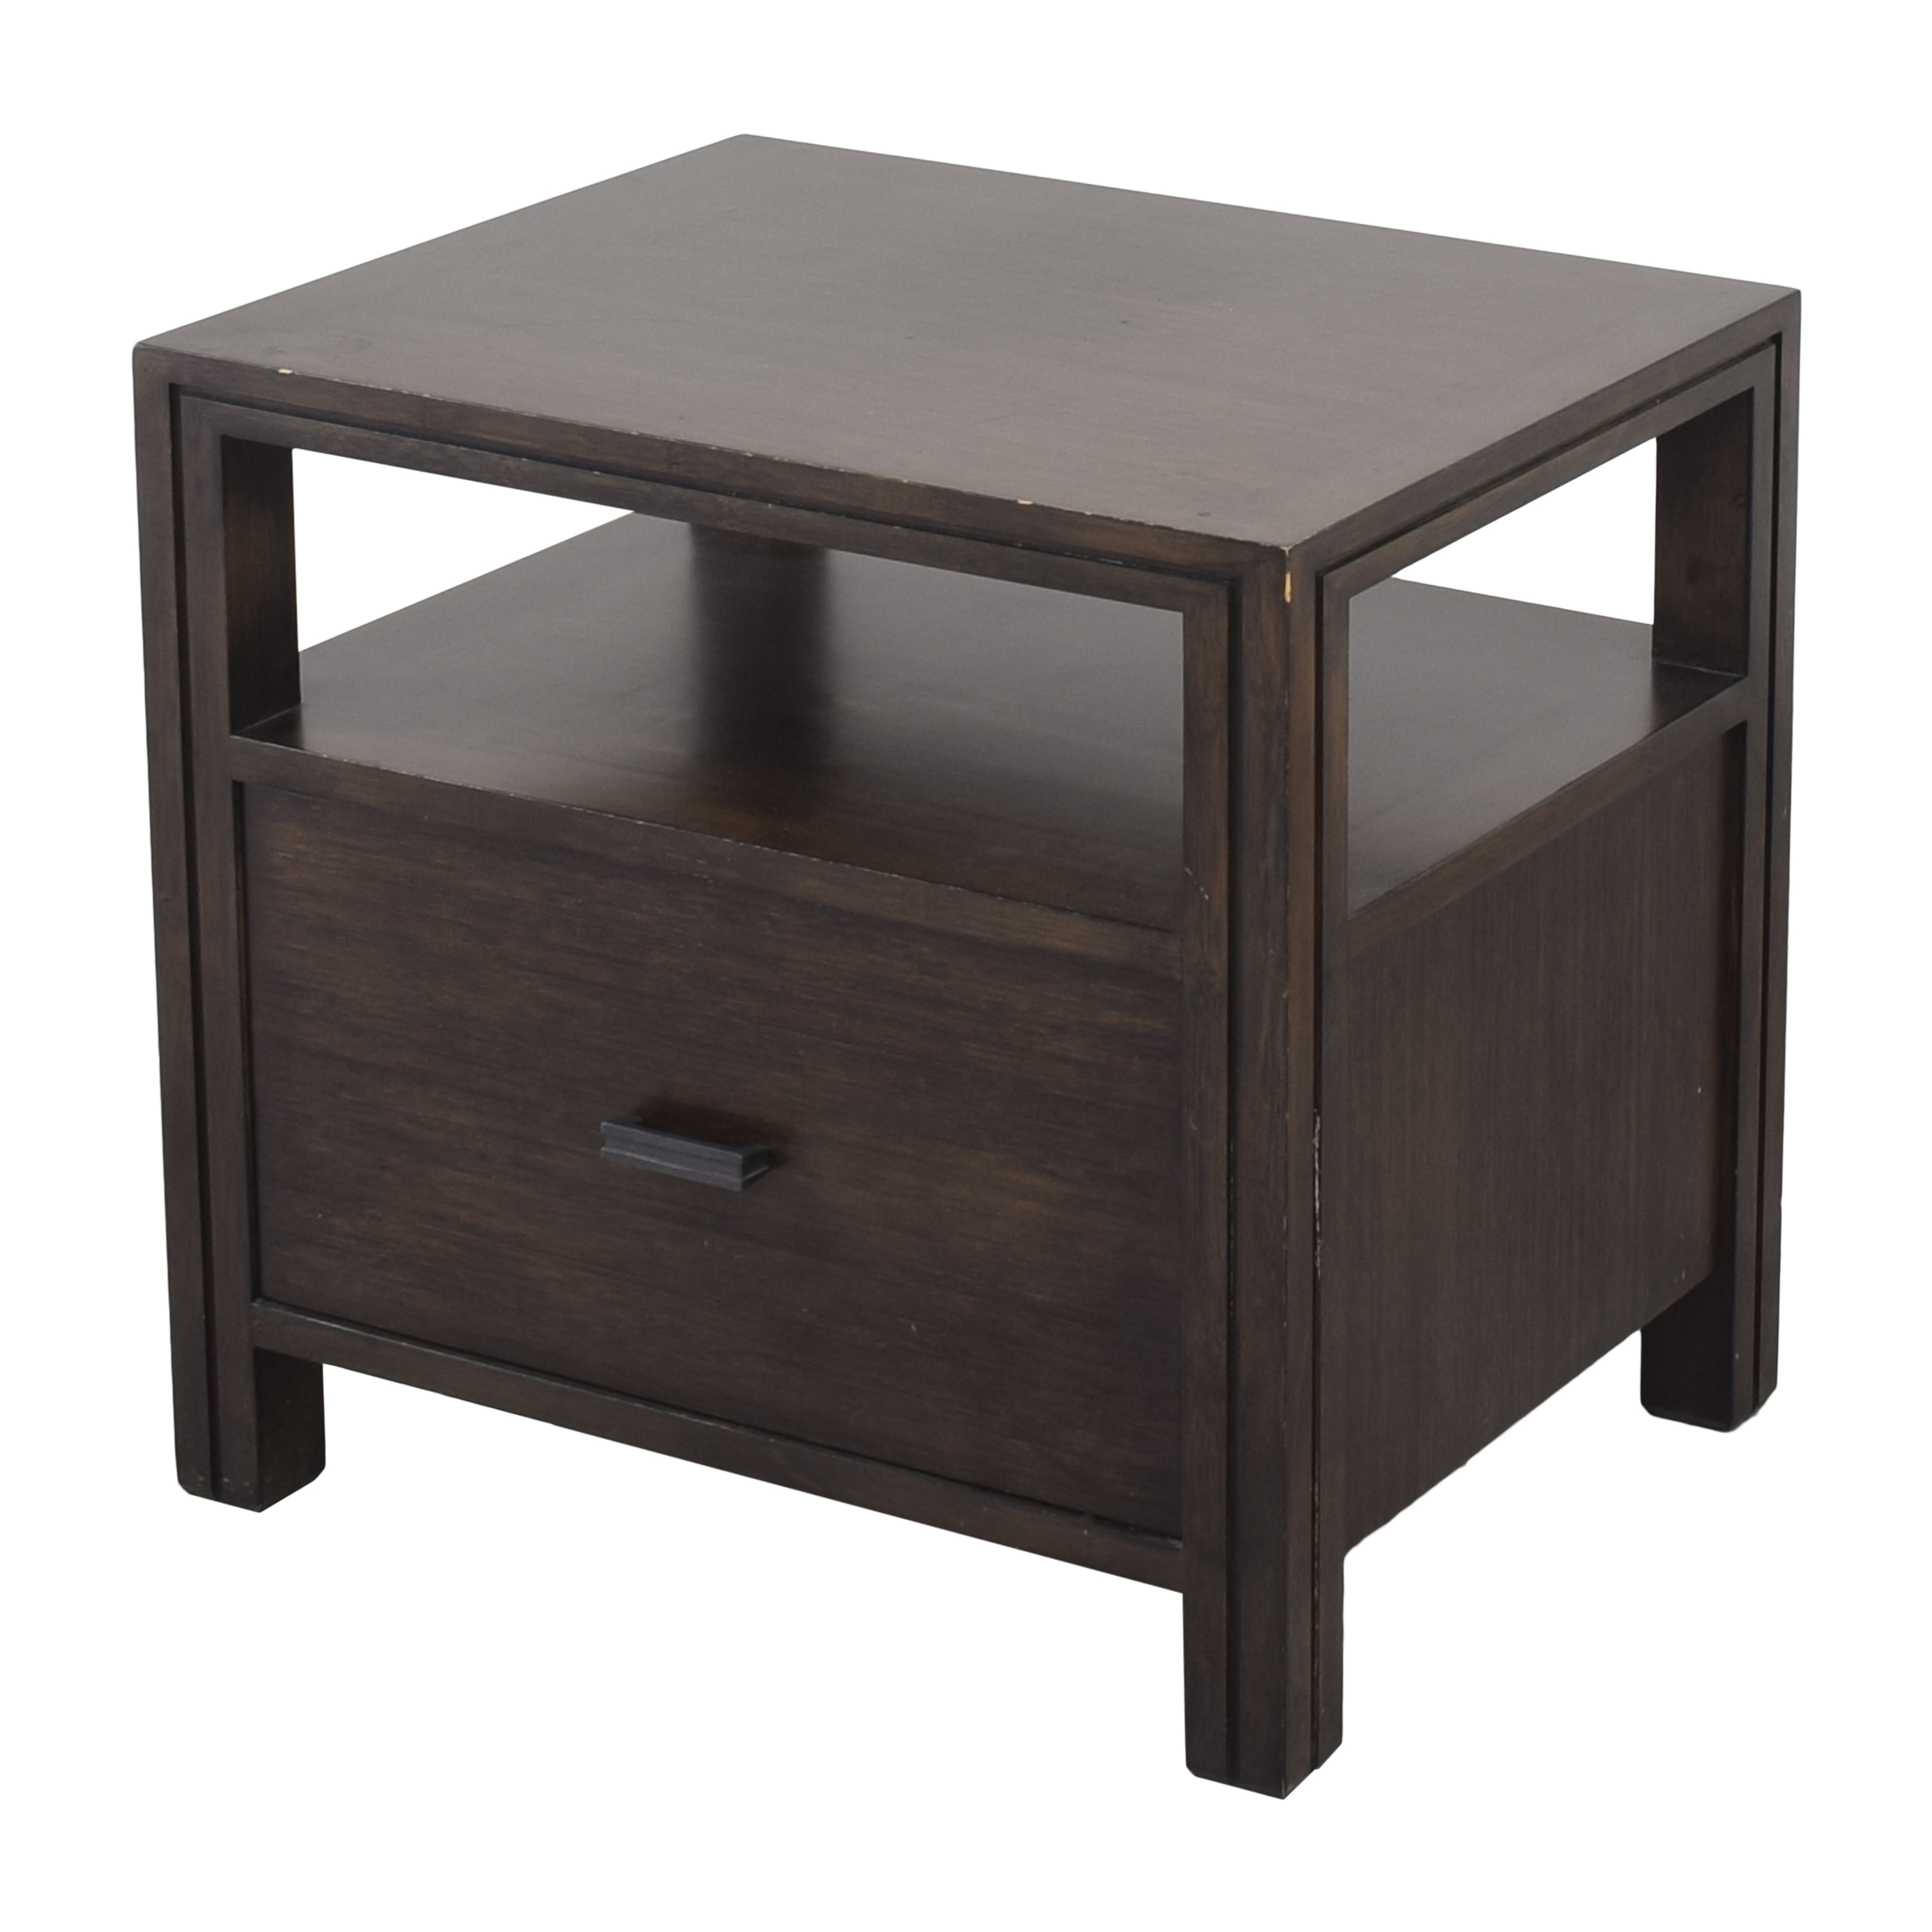 Crate & Barrel Maria Yee for Crate & Barrel Side Cabinet used